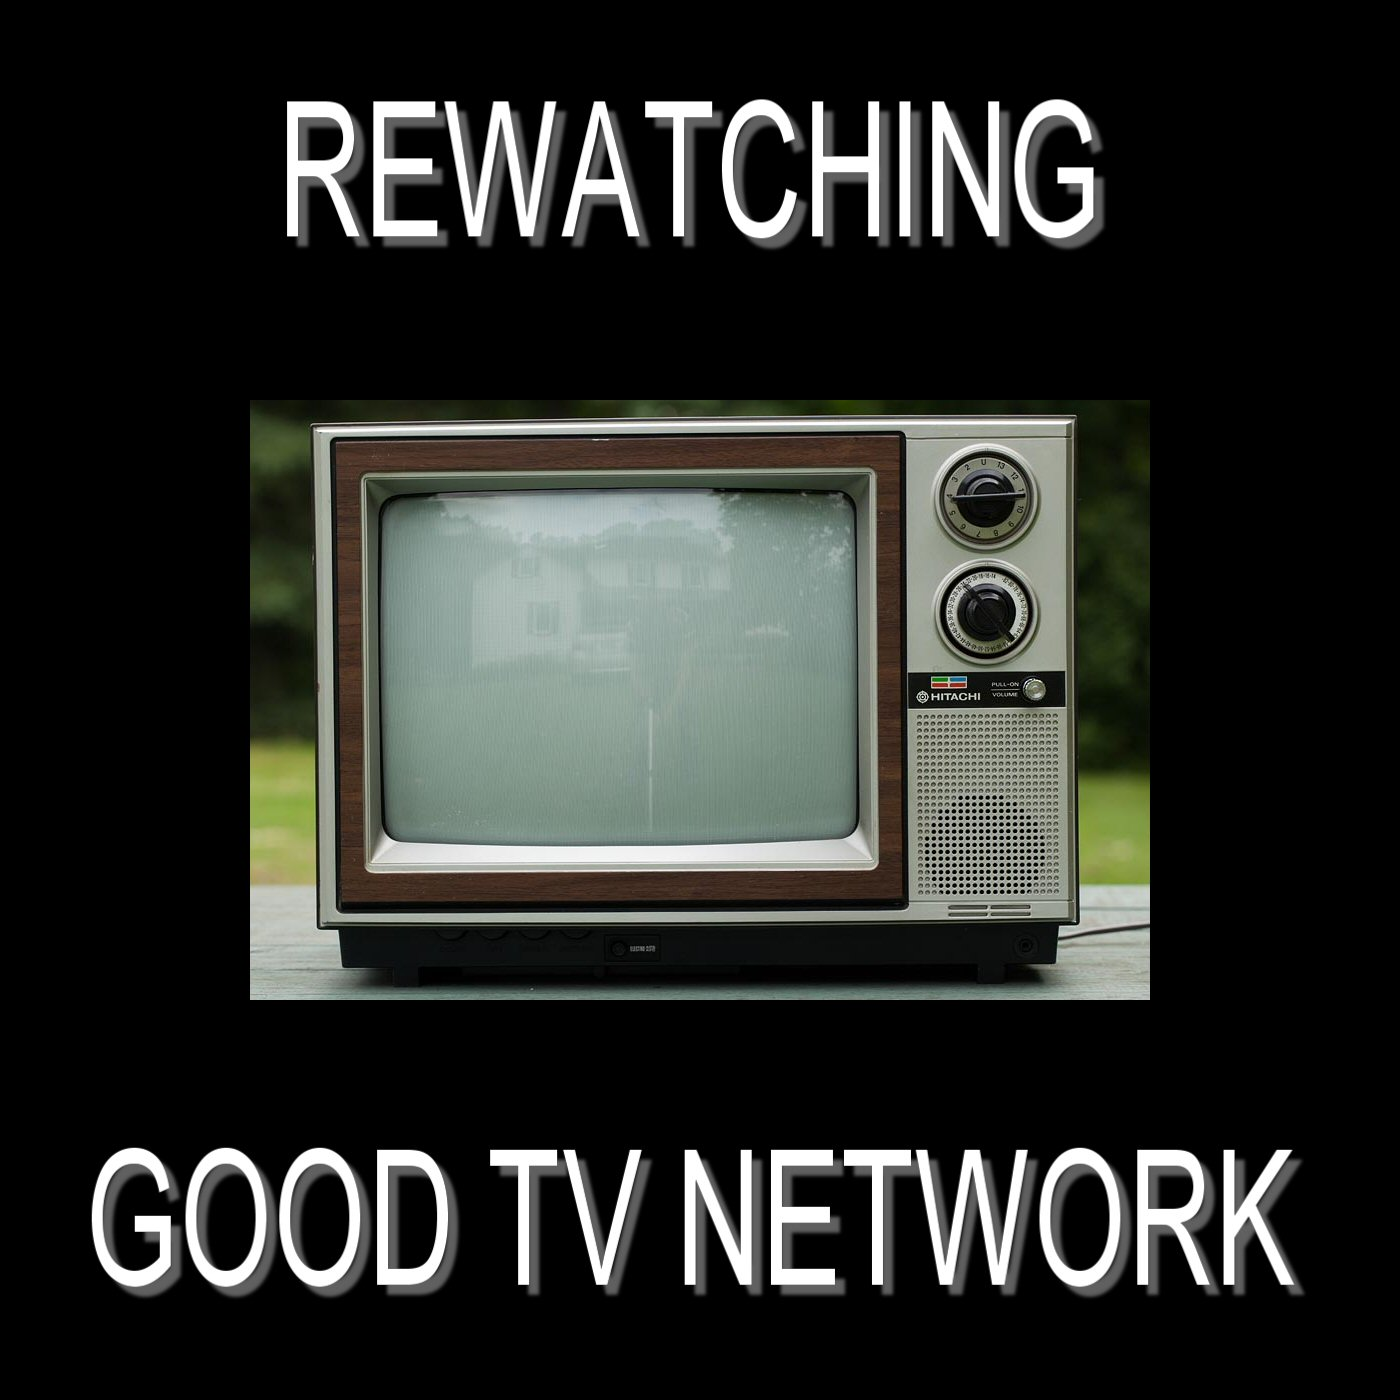 Re-Watching Good TV Network